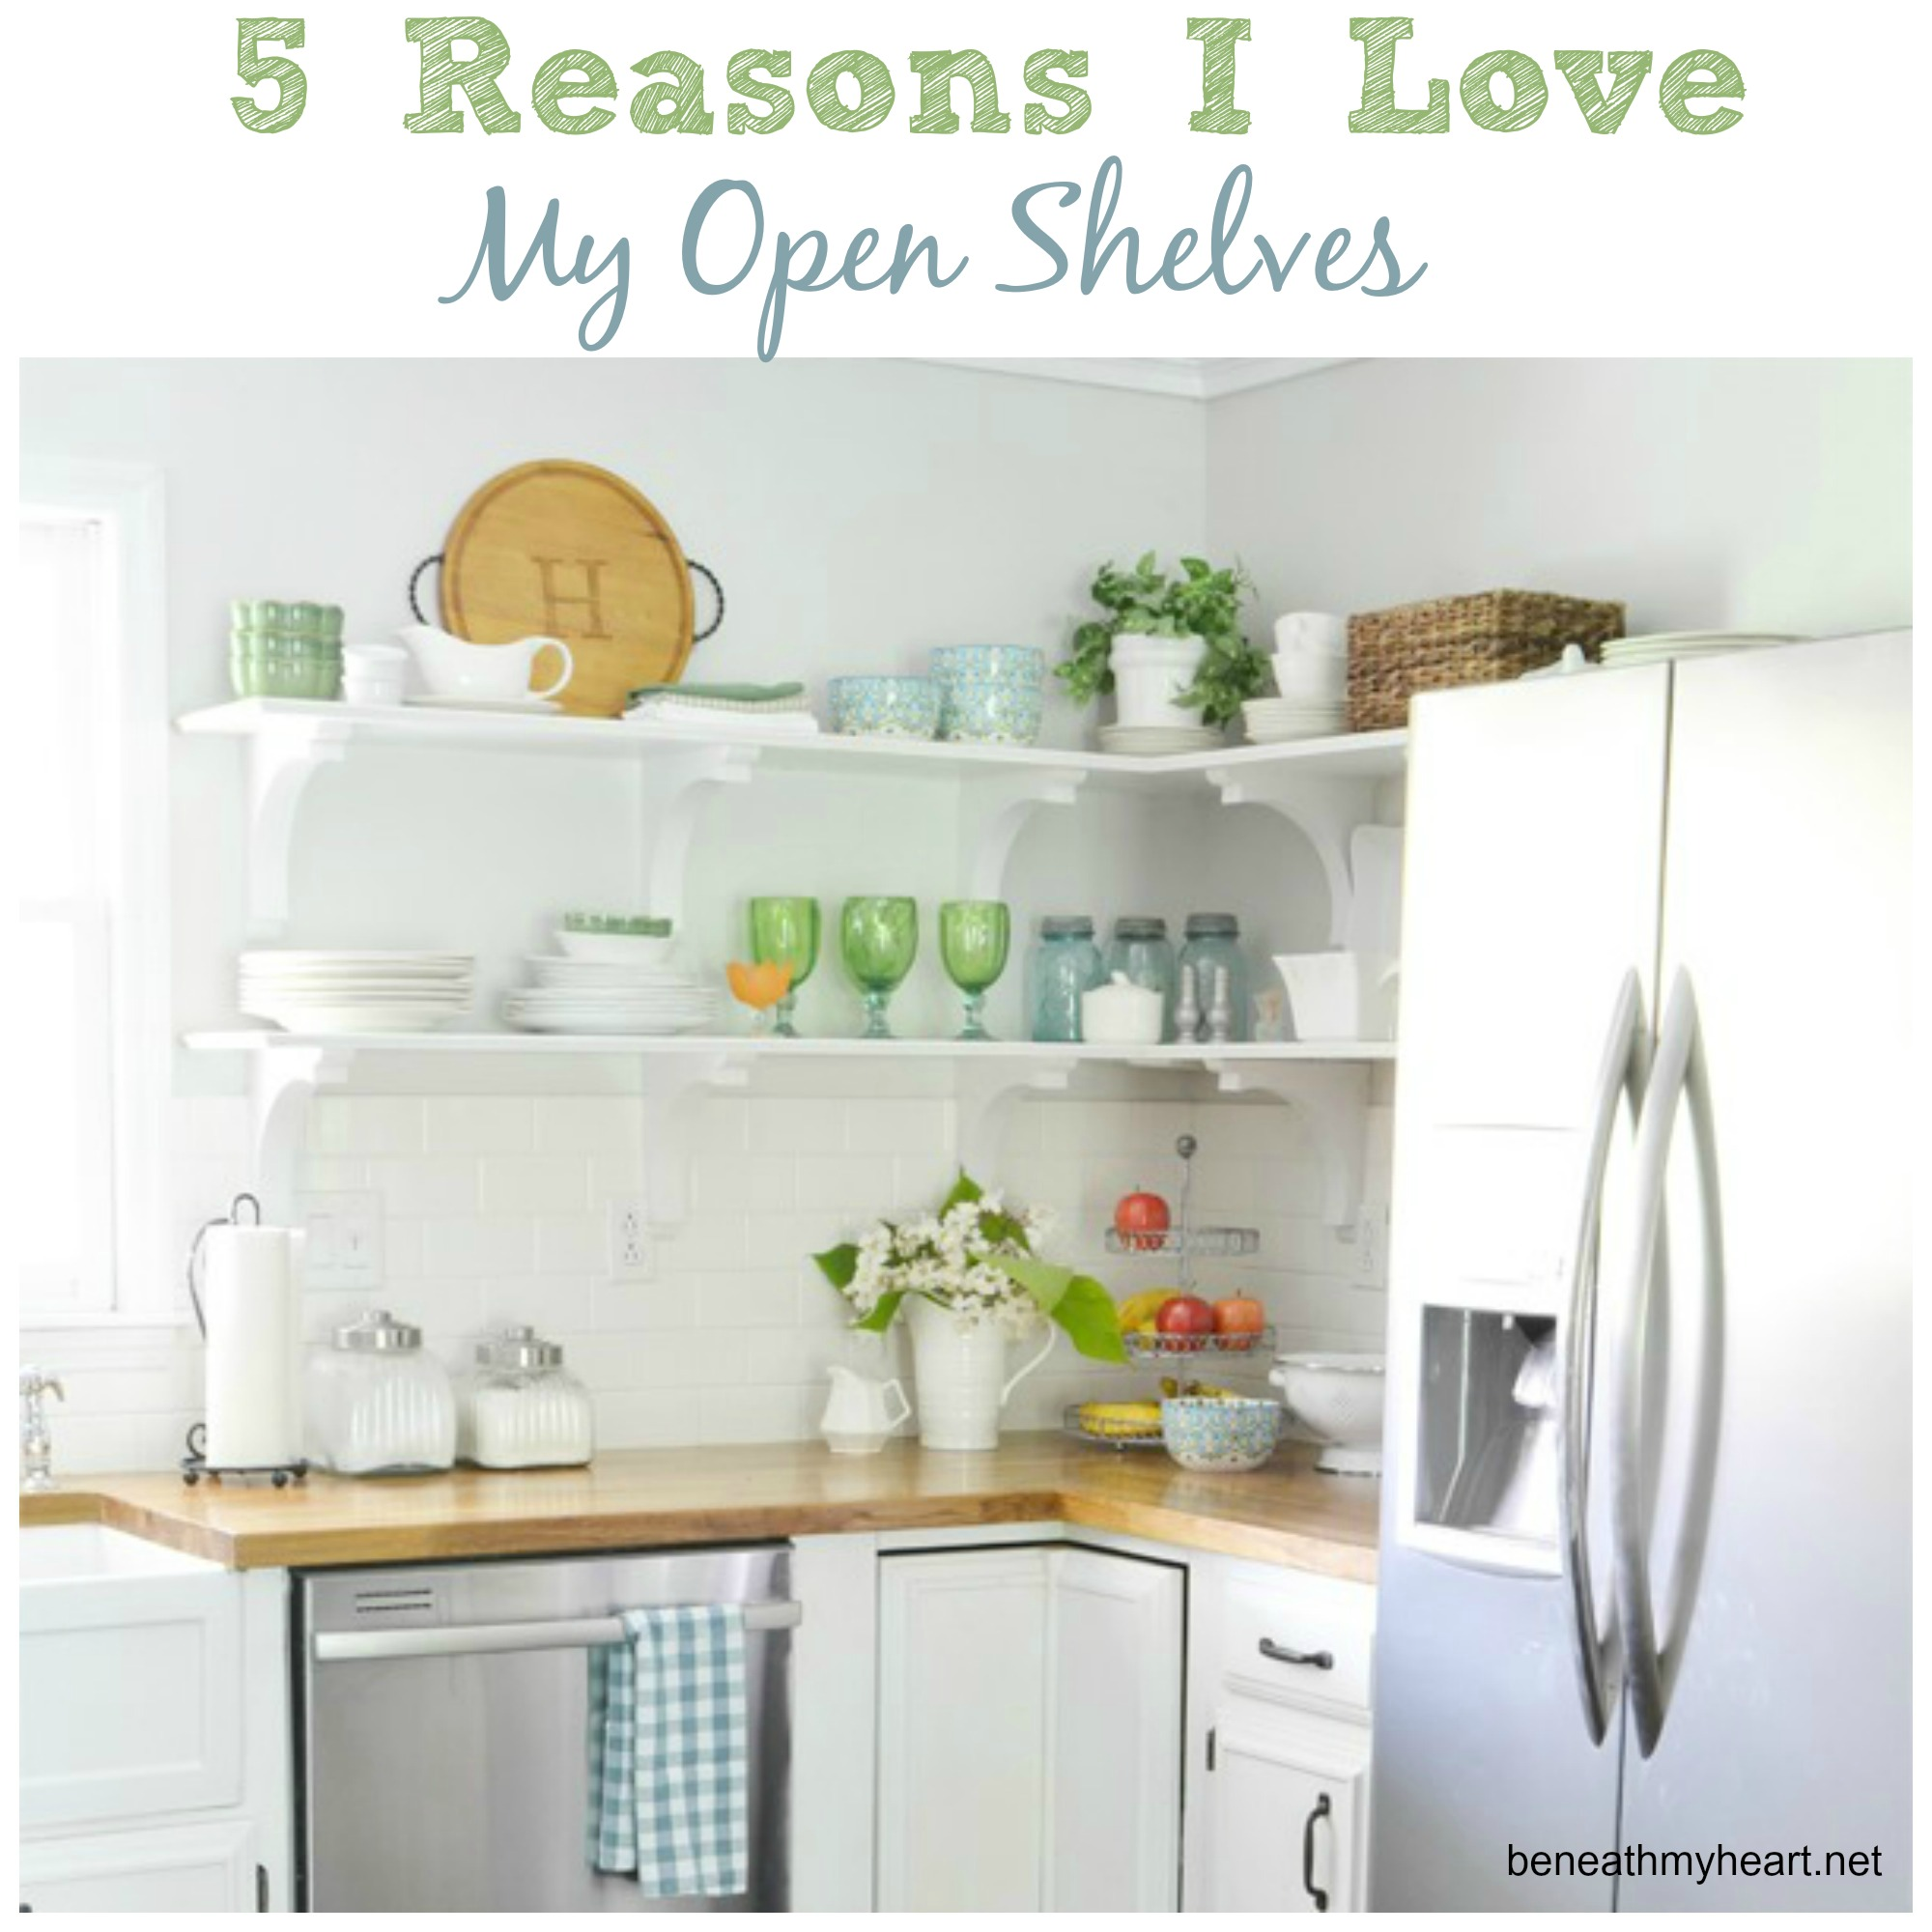 The Benefits Of Open Shelving In The Kitchen: 5 Reasons I Love My Kitchen Open Shelves